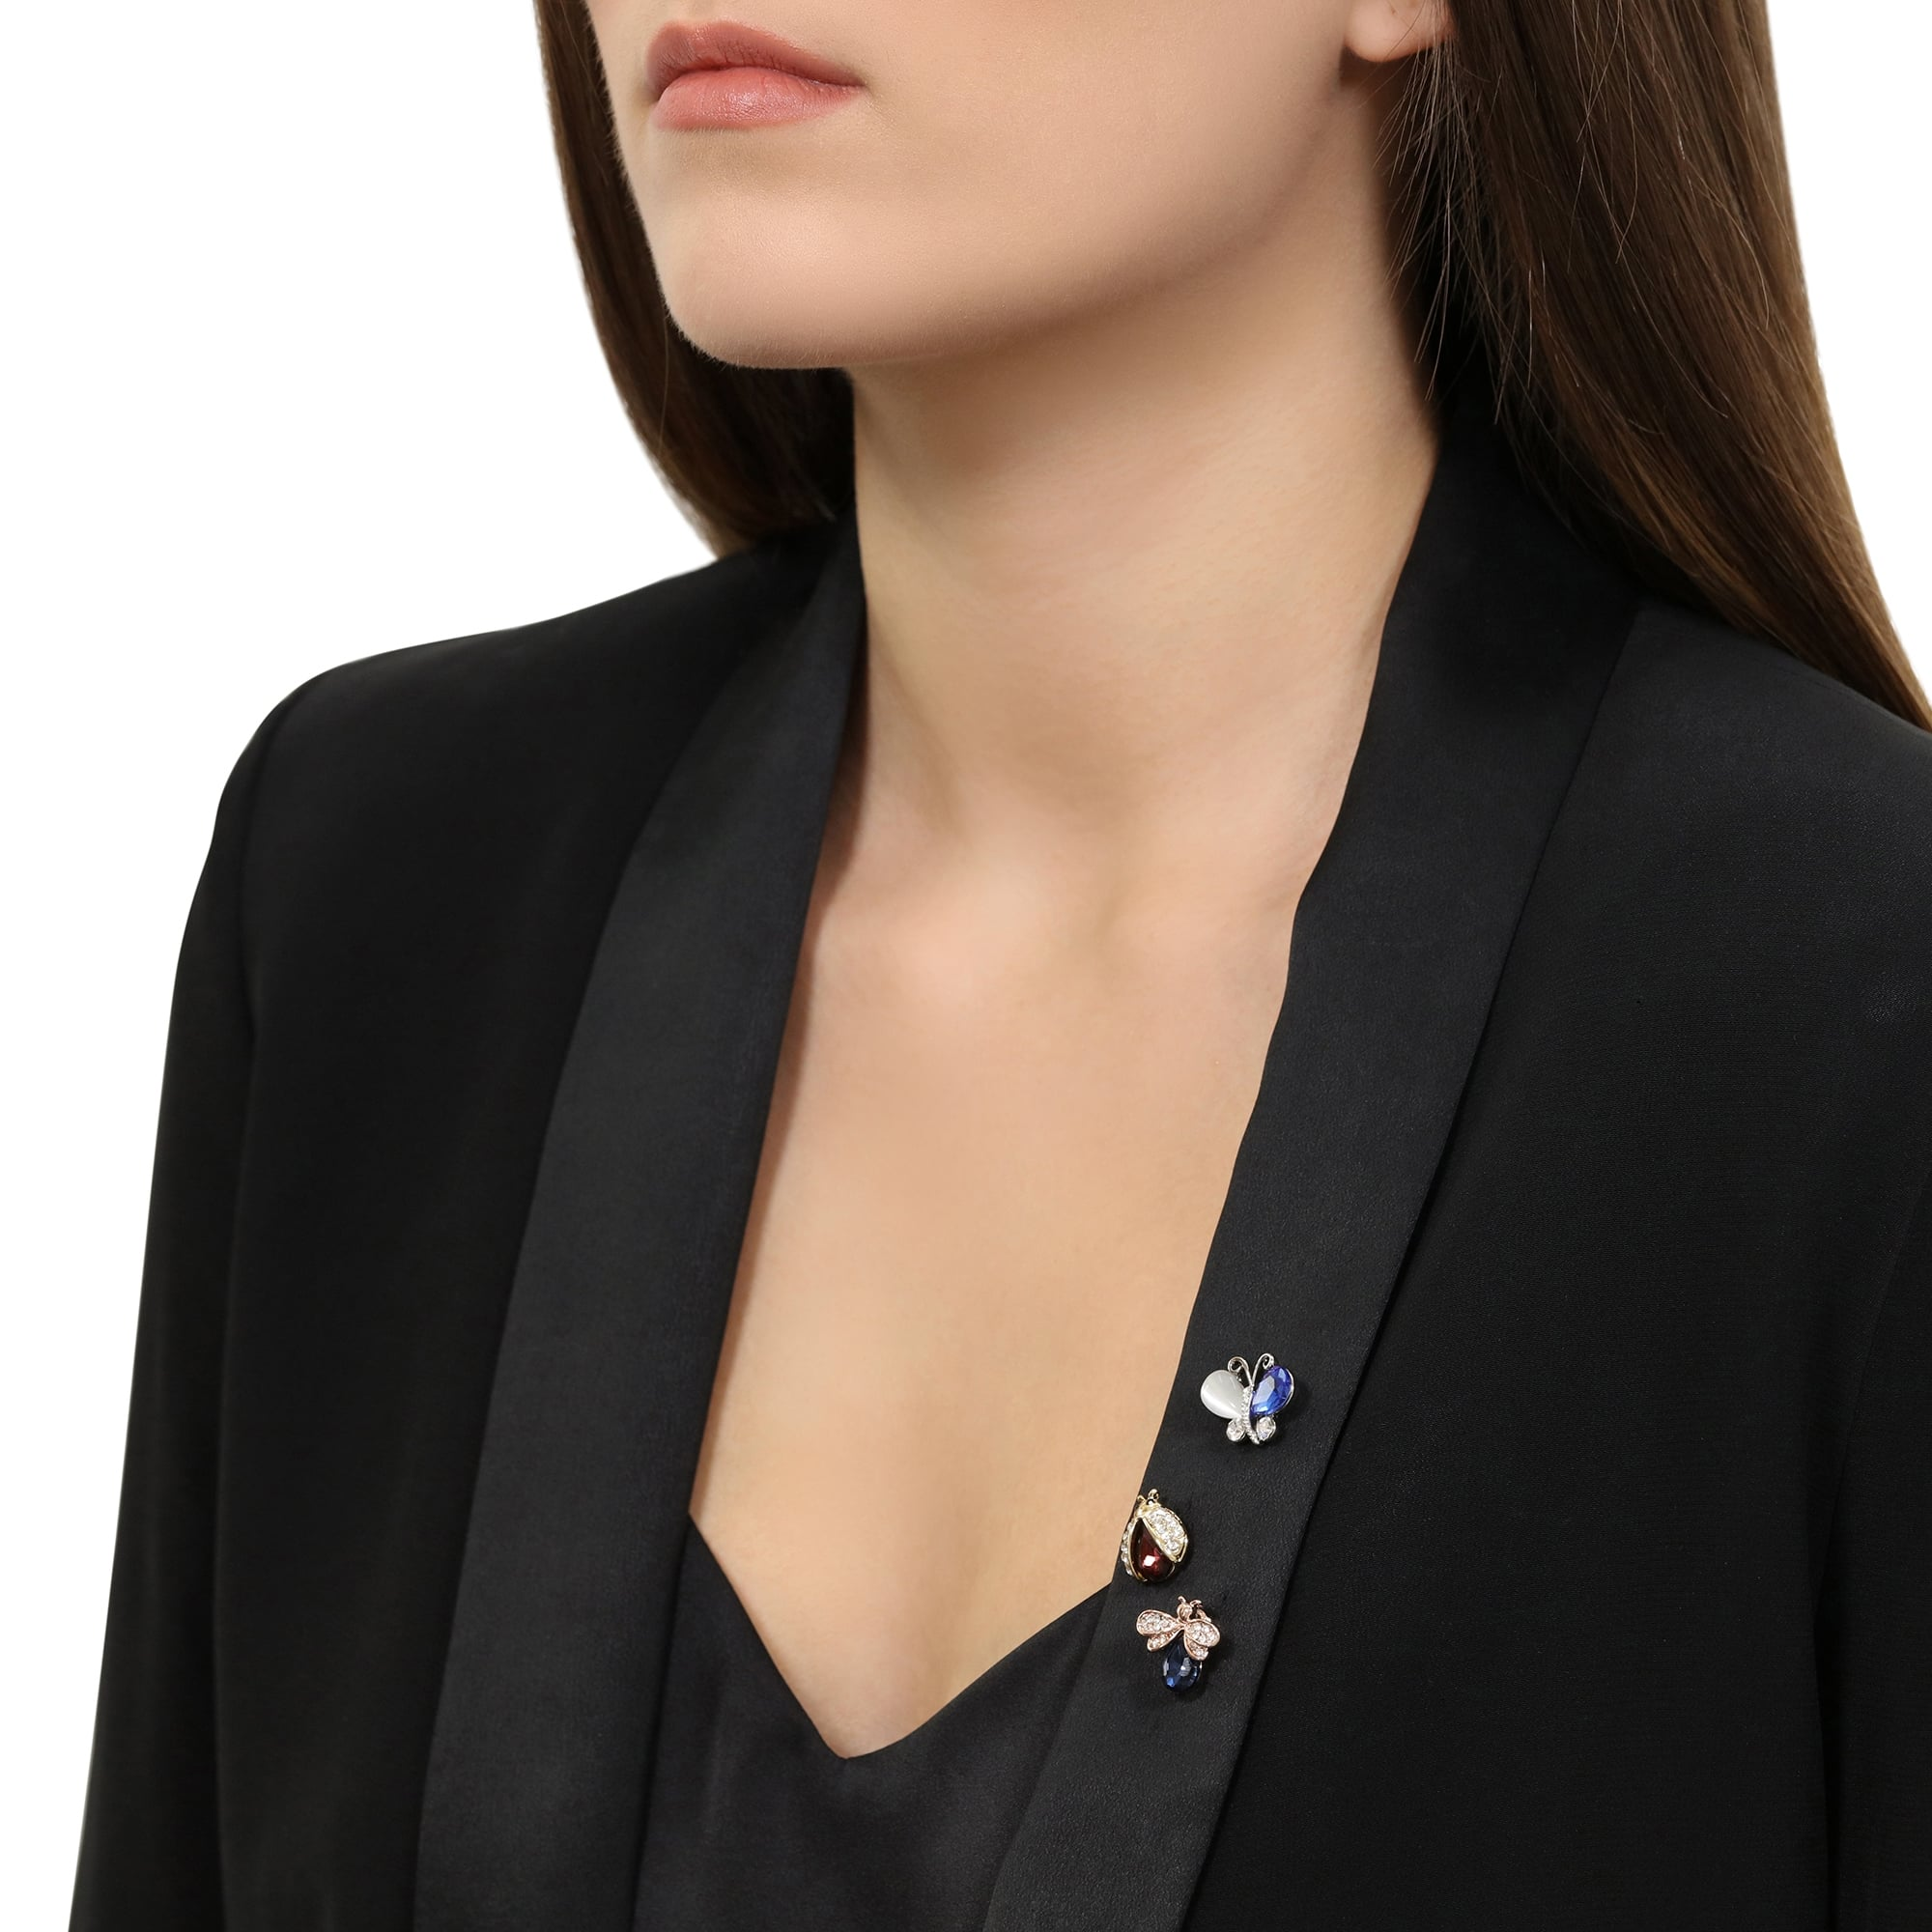 ga cotton emporio shirts and blazers with blazer arteni brooch jacket armani en